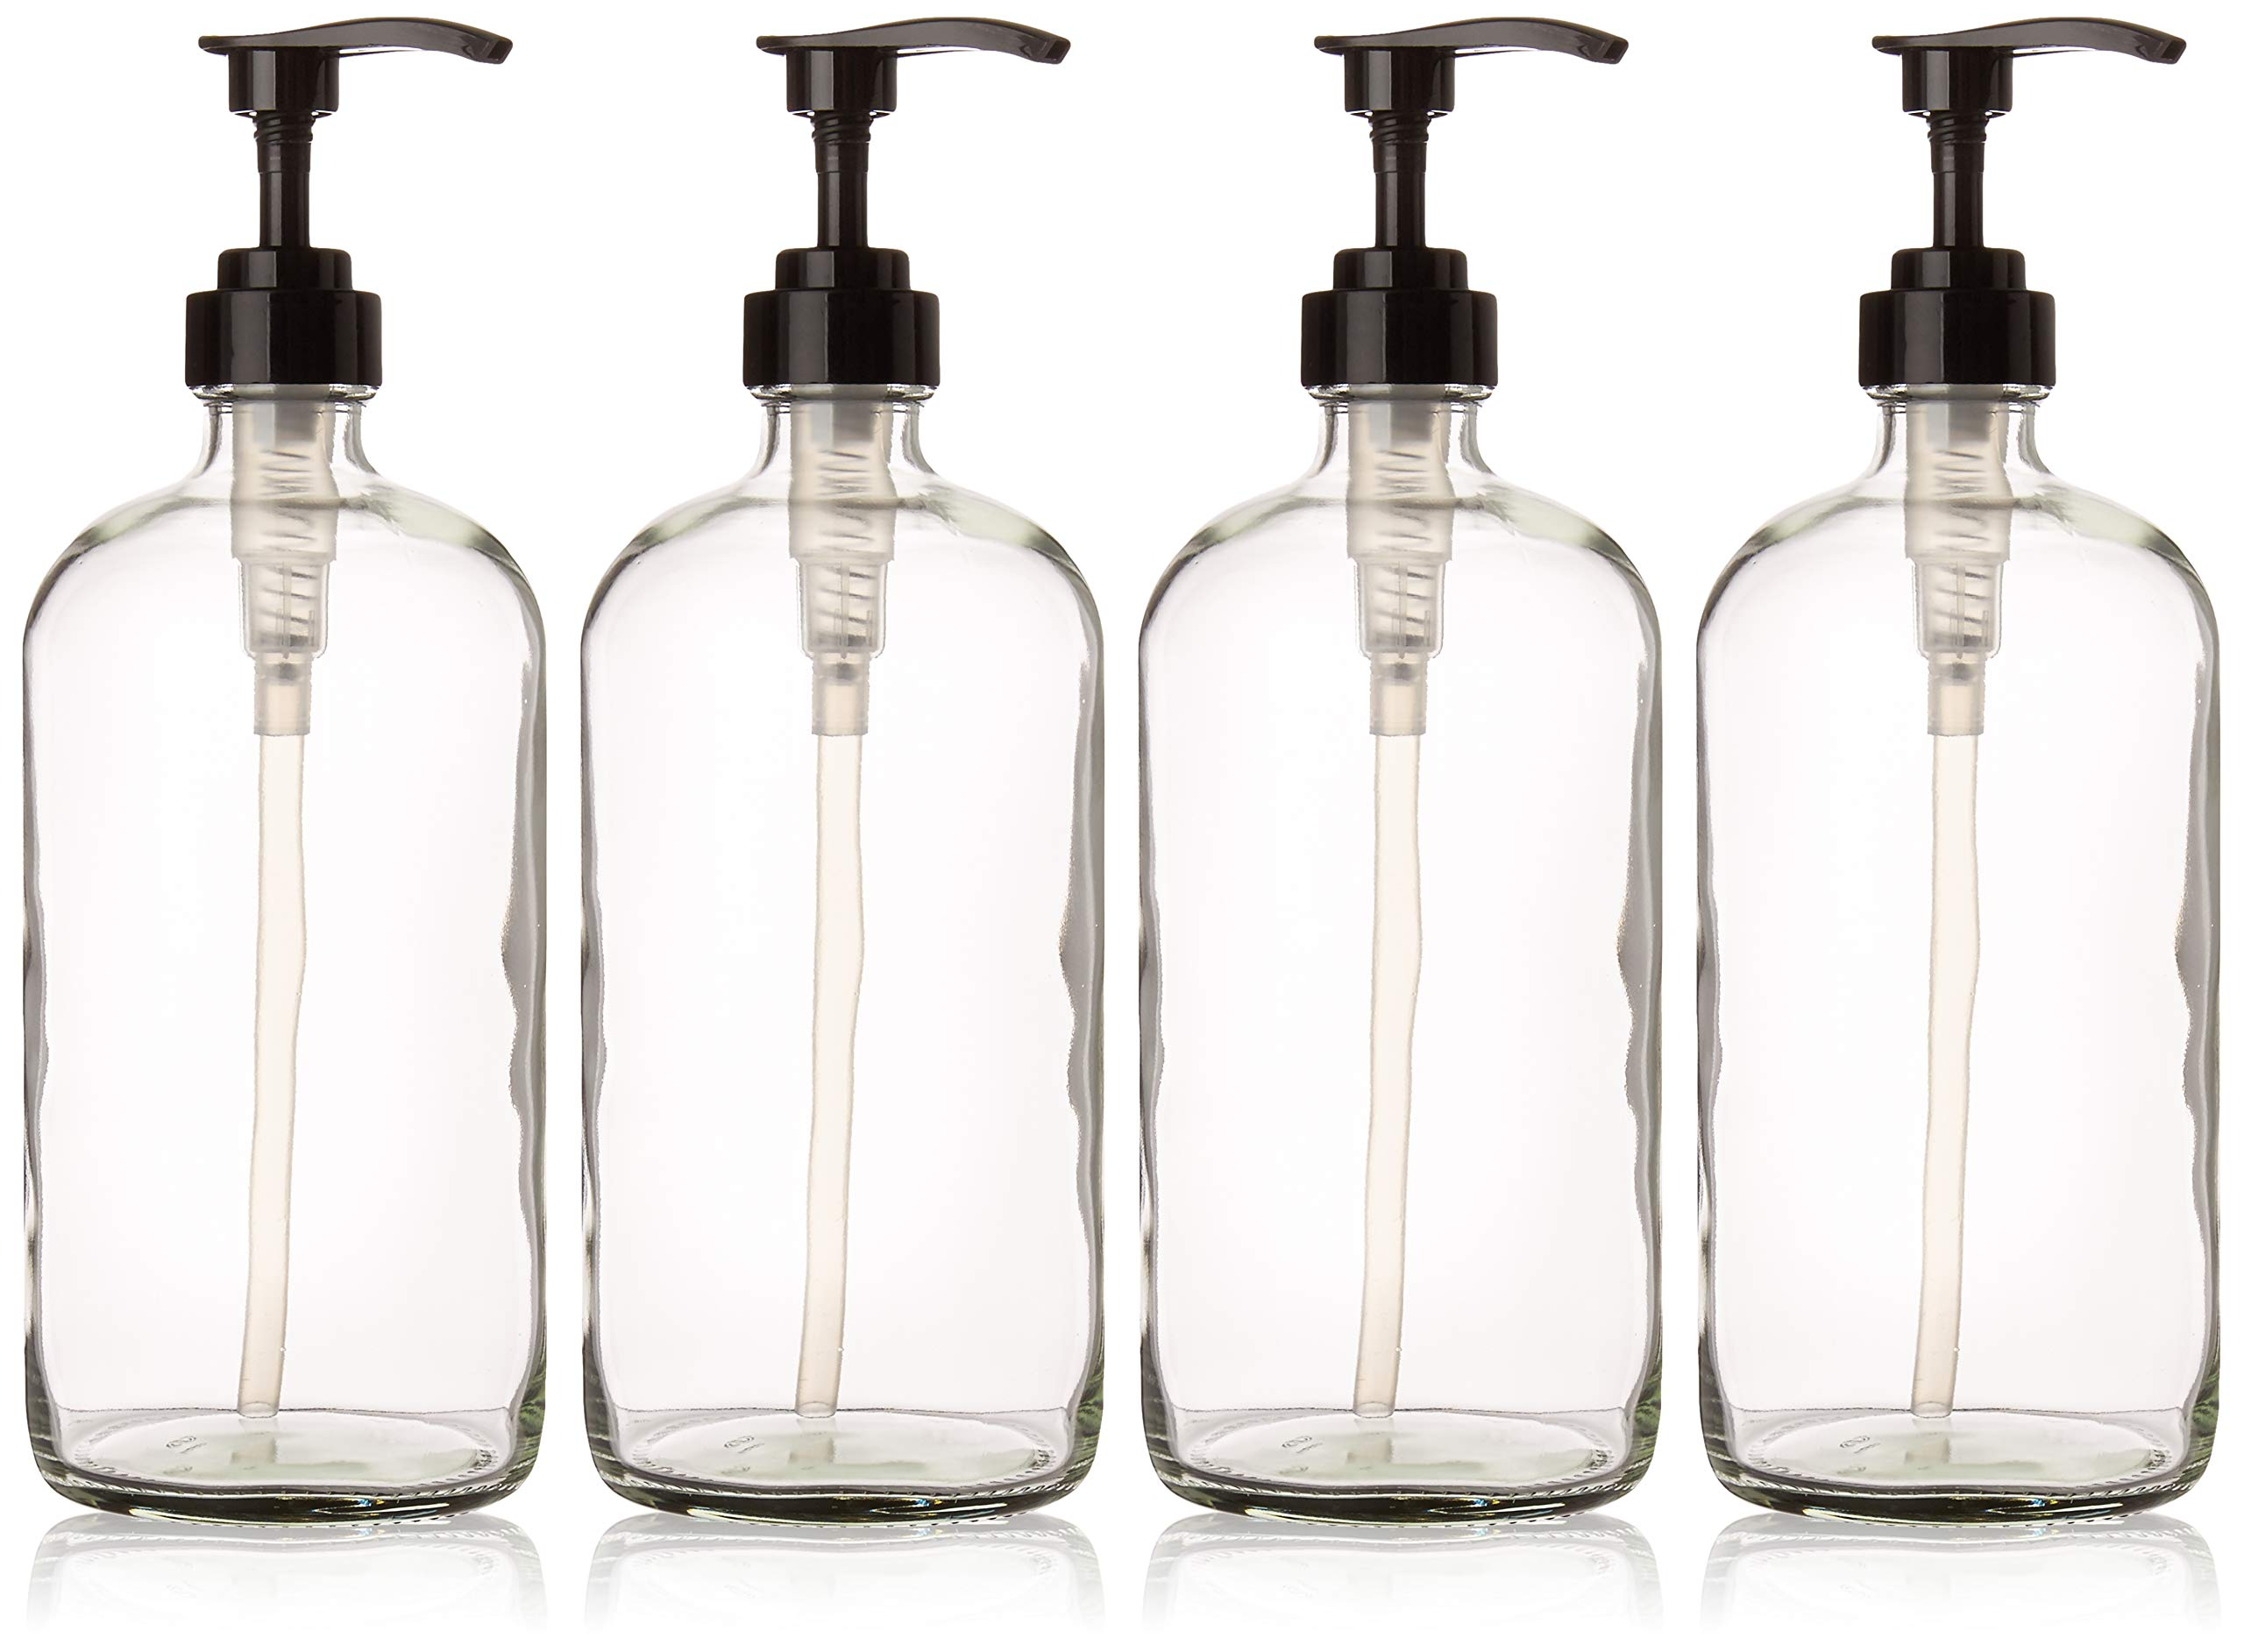 32 Ounce Large Clear Glass Boston Round Bottles with Black Pumps. Great for Lotions, Soaps, Oils, Sauces and DIY Laundry Detergent - Food Safe and Medical Grade - by kitchentoolz (Pack of 4)